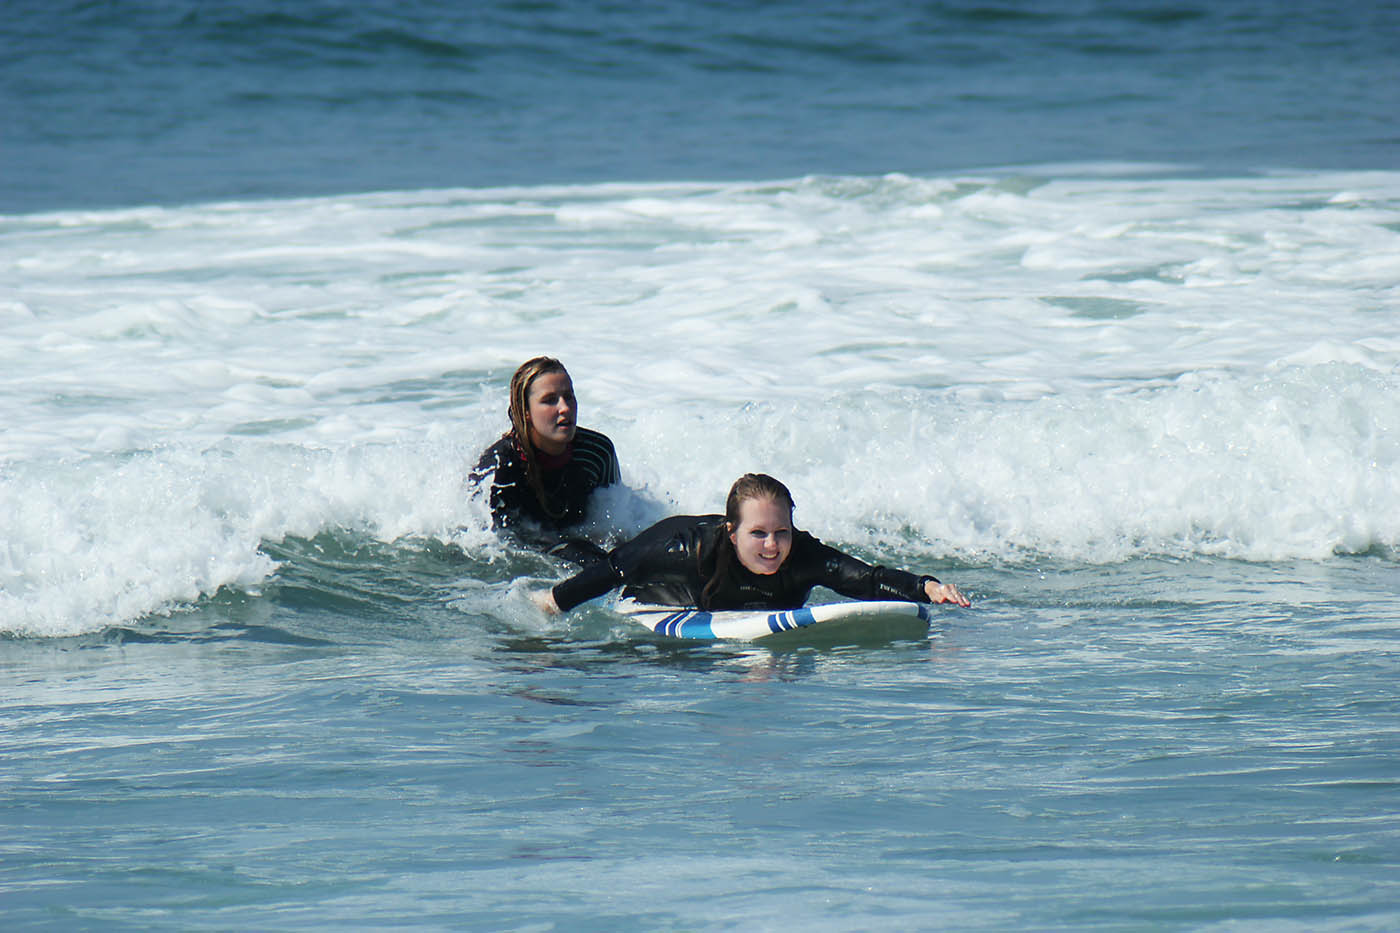 Surf lessons in San Clemente, CA